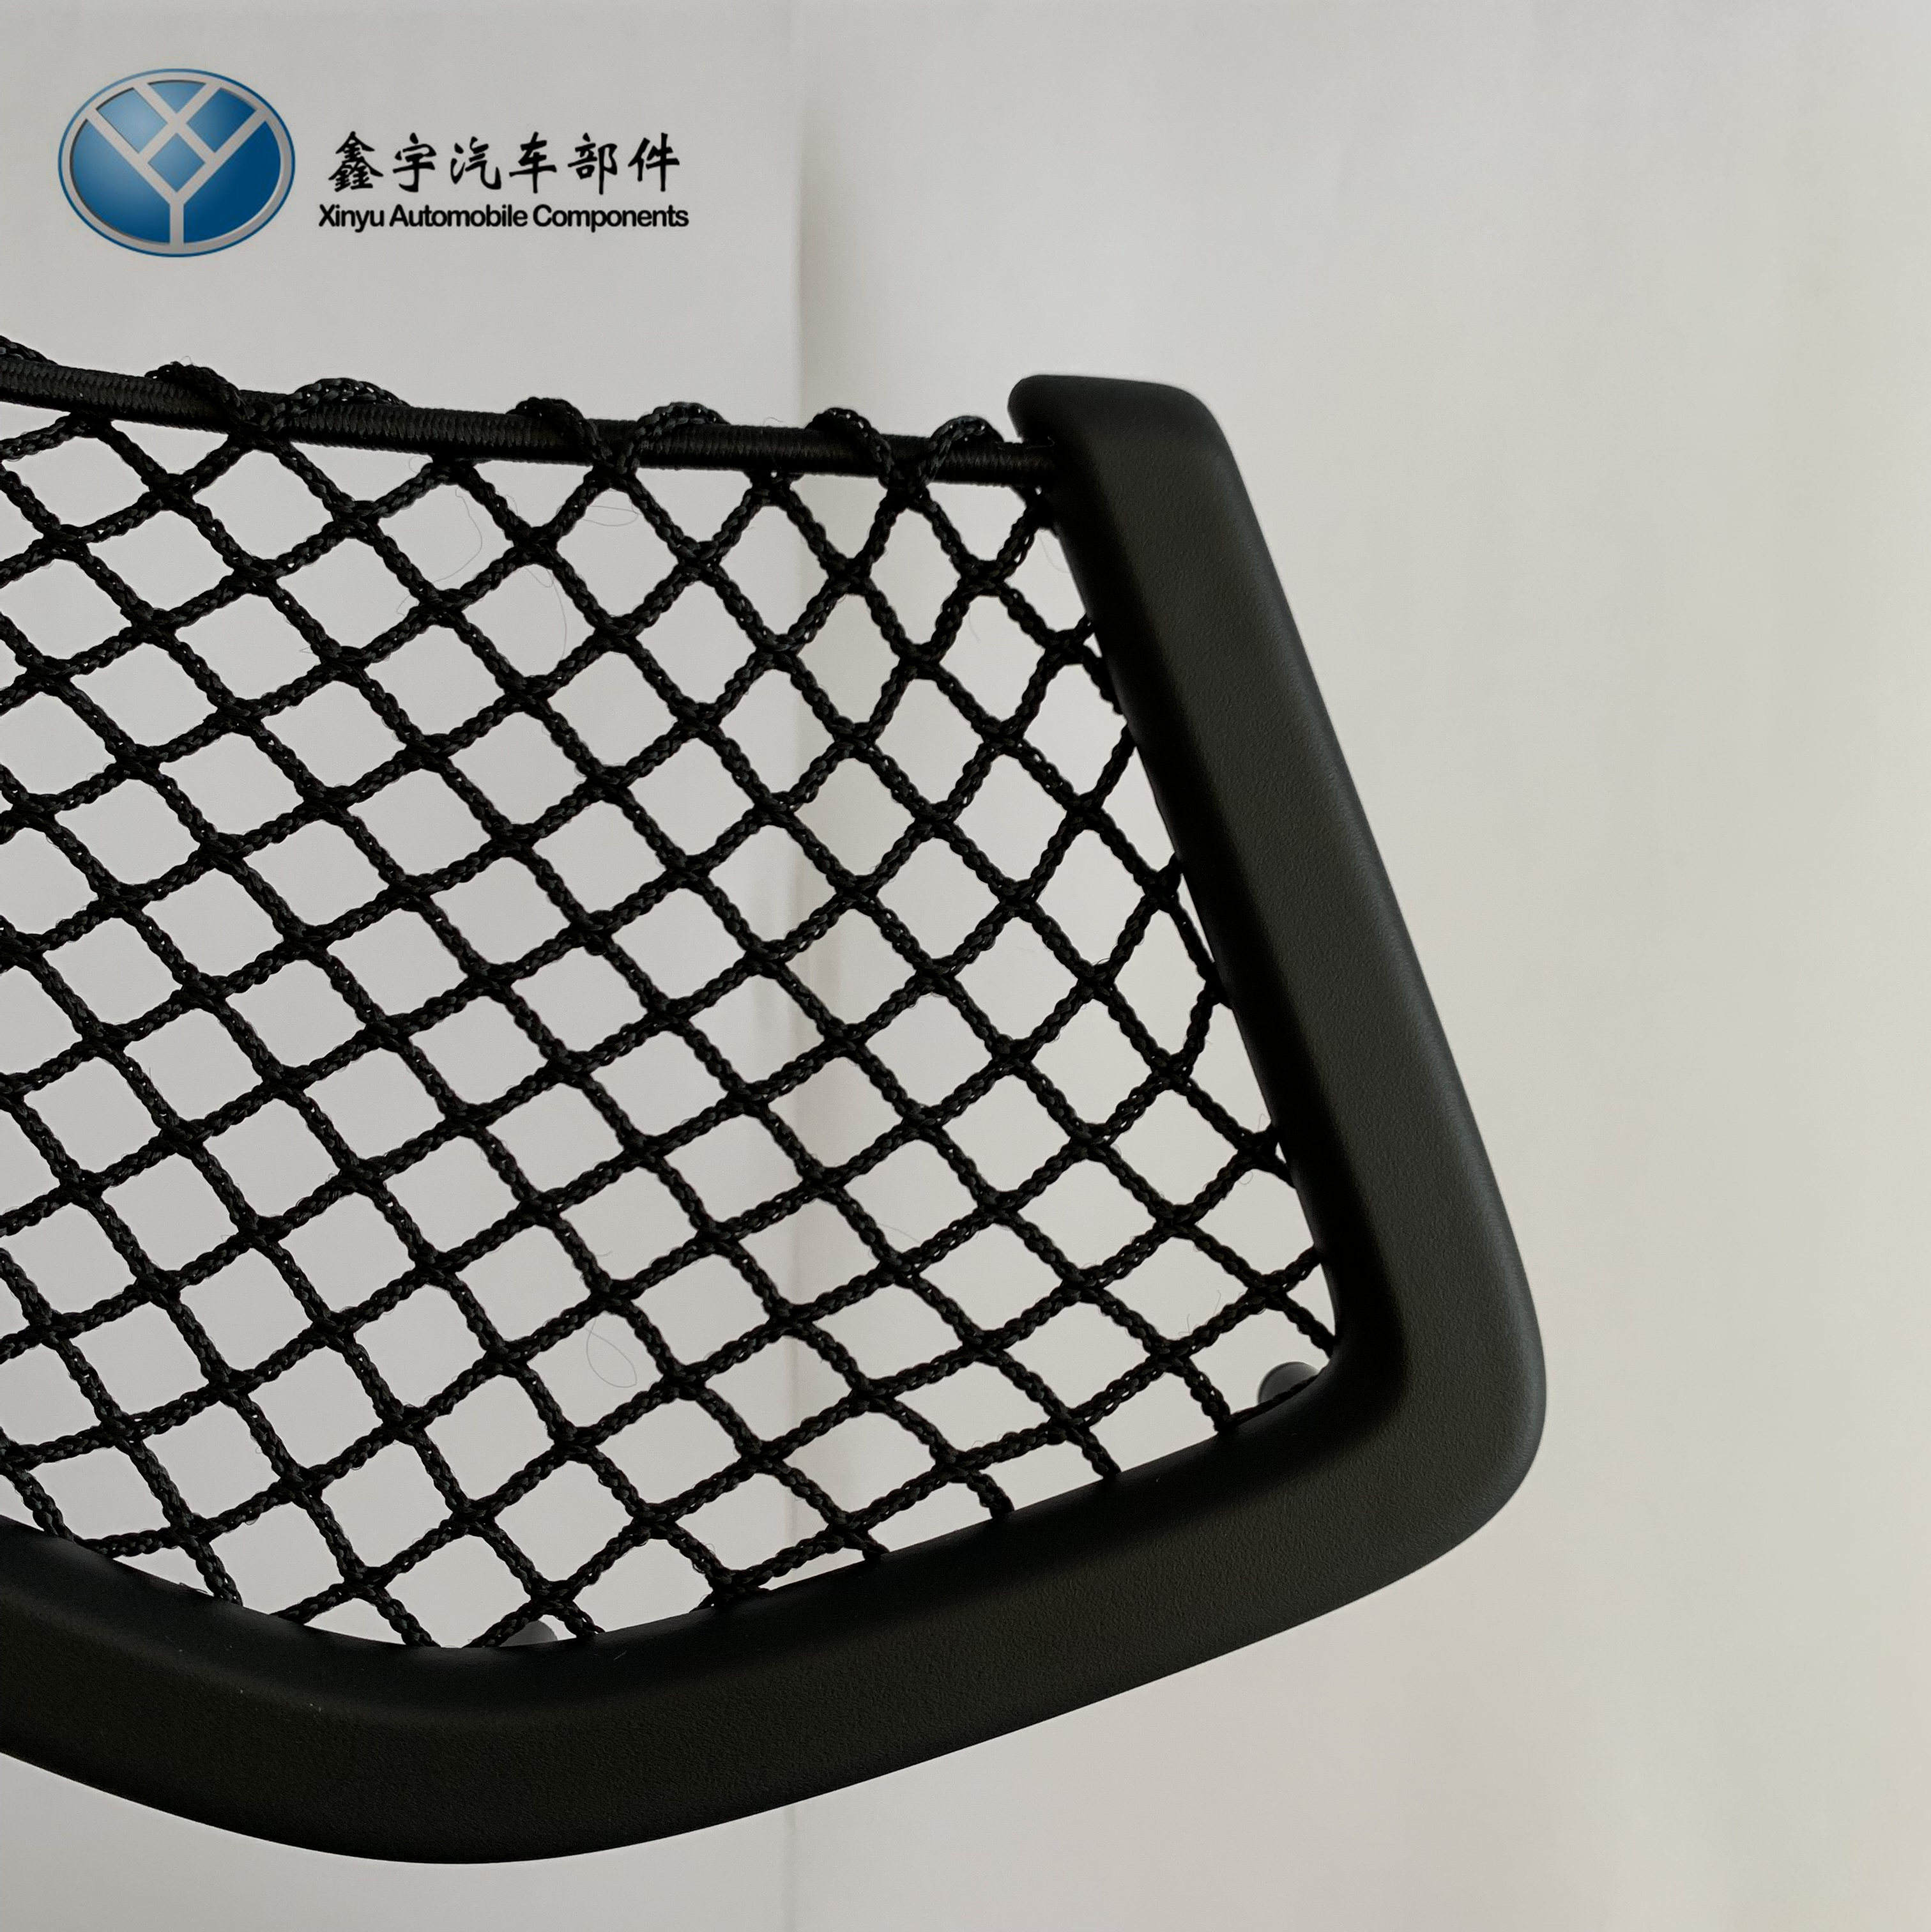 Storage Seat Car net